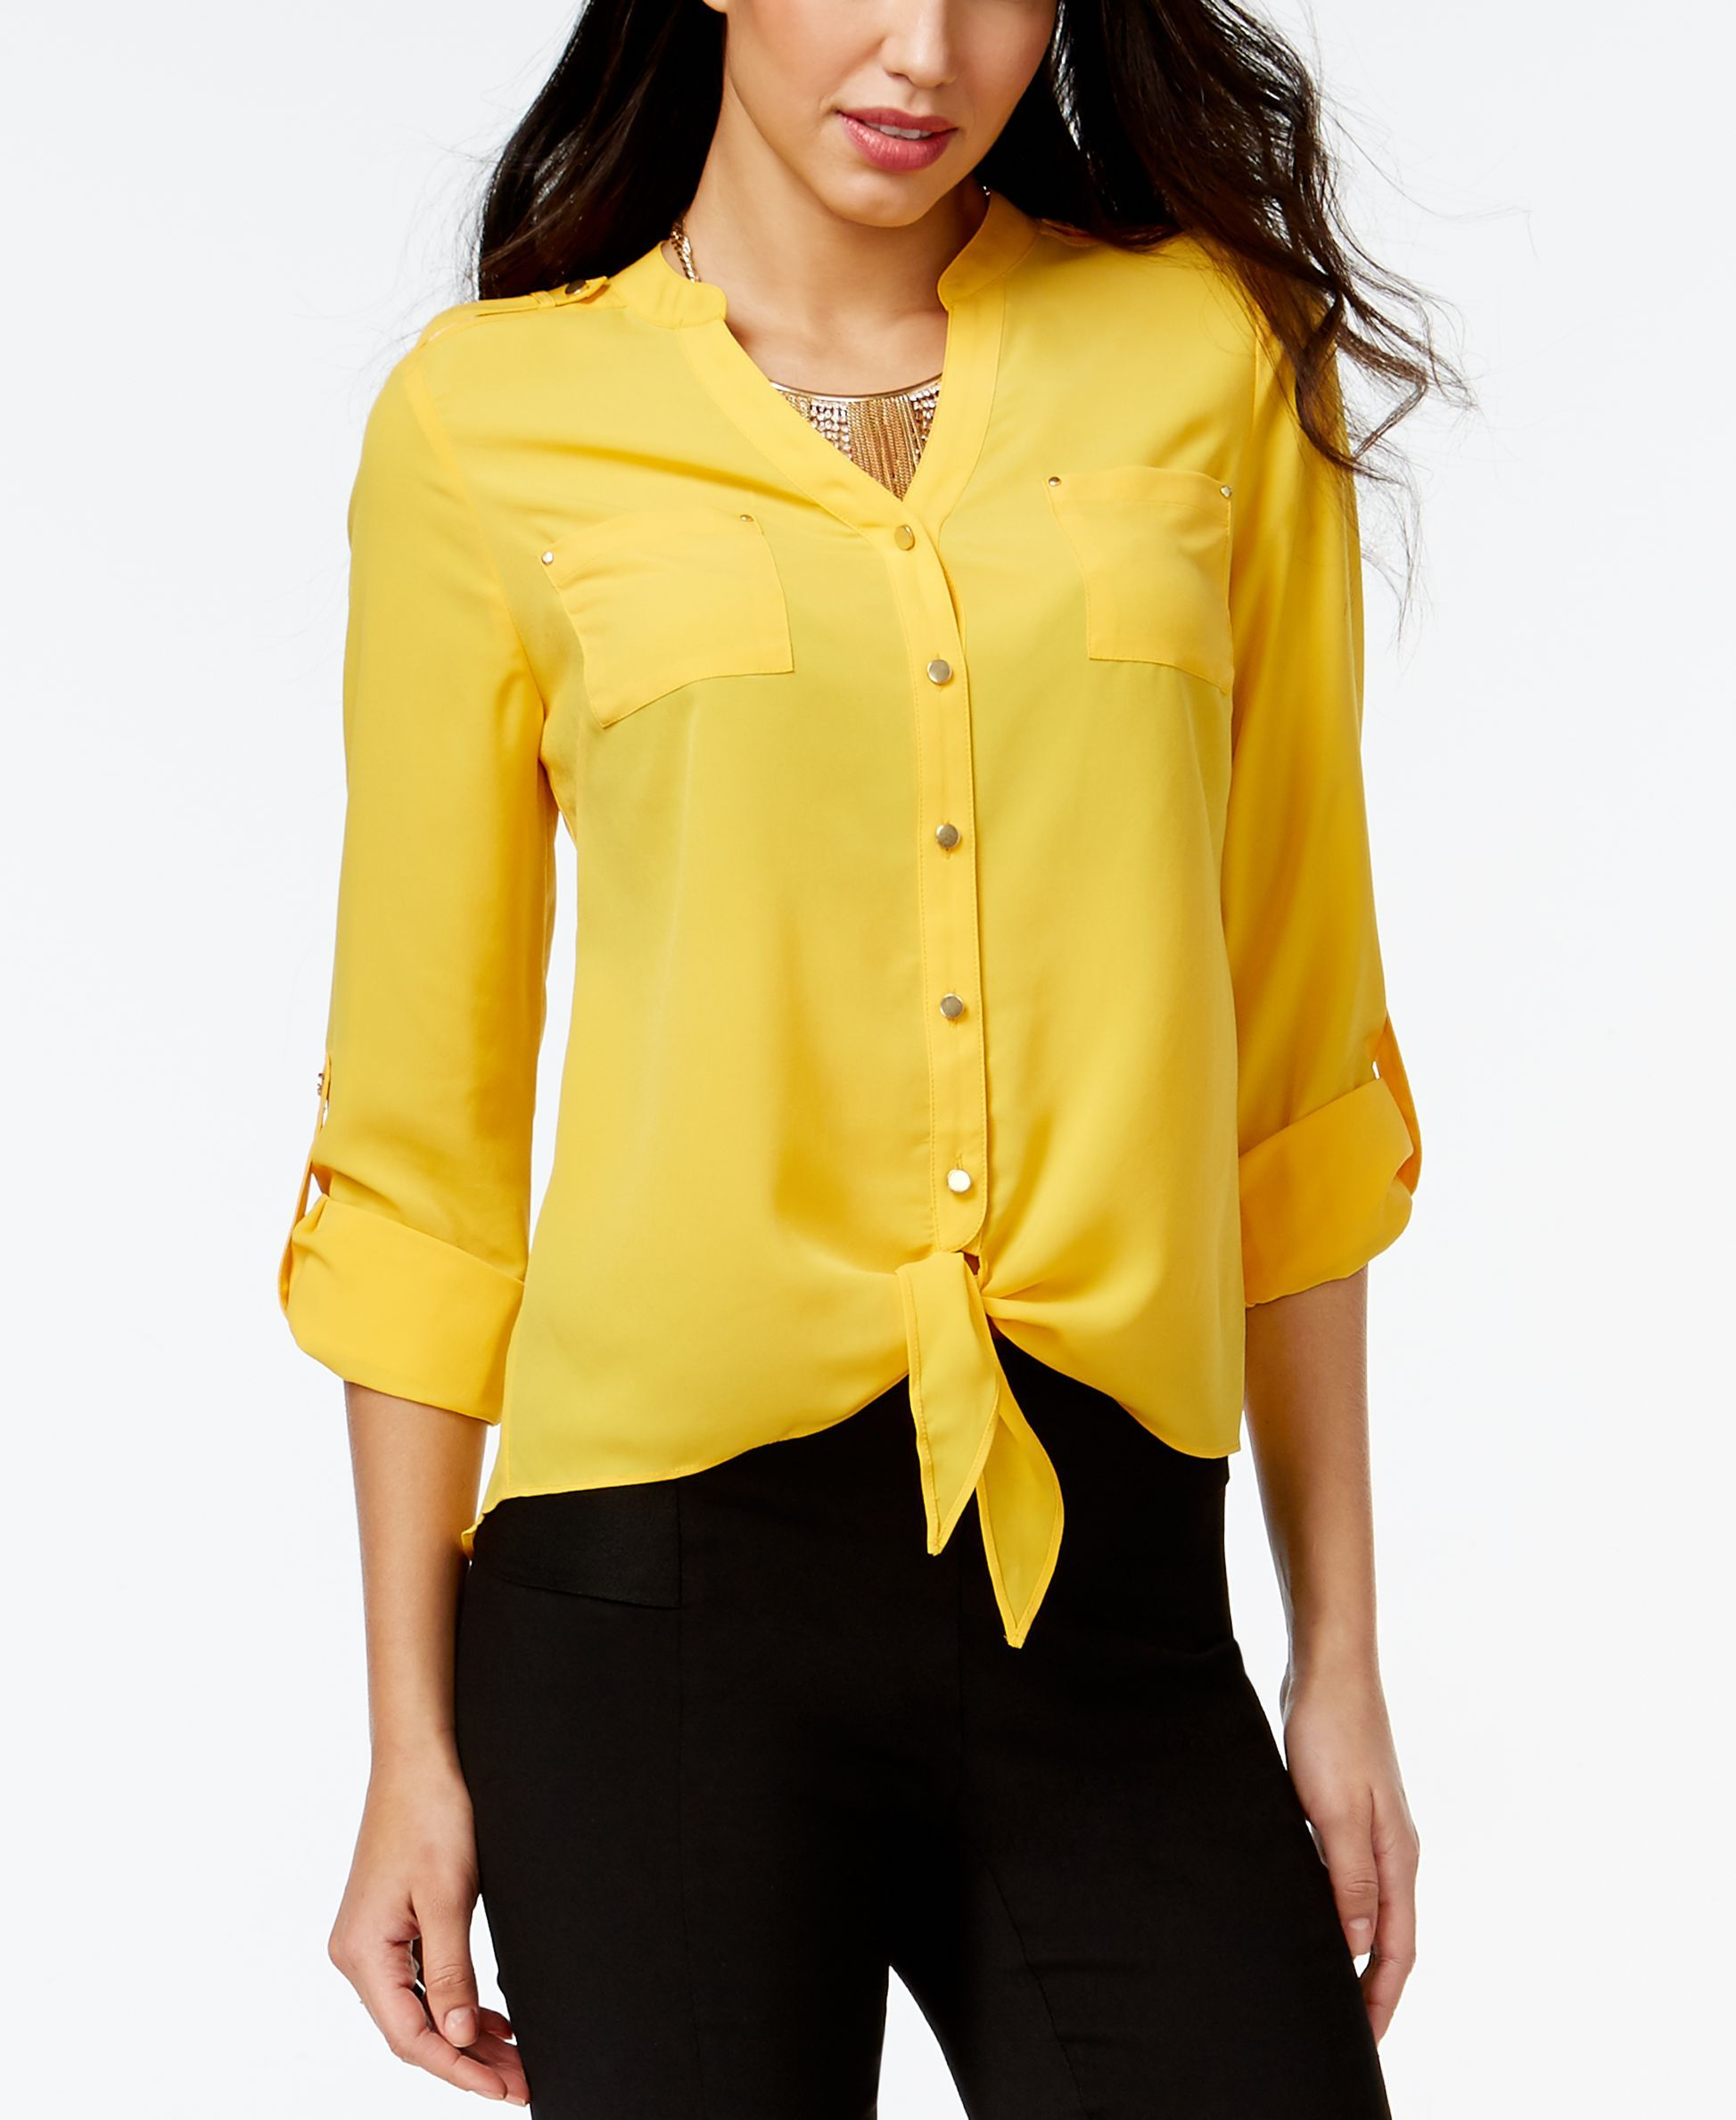 Thalia Sodi Solid Tie Front Blouse Only At Macy S Blouse In 2018